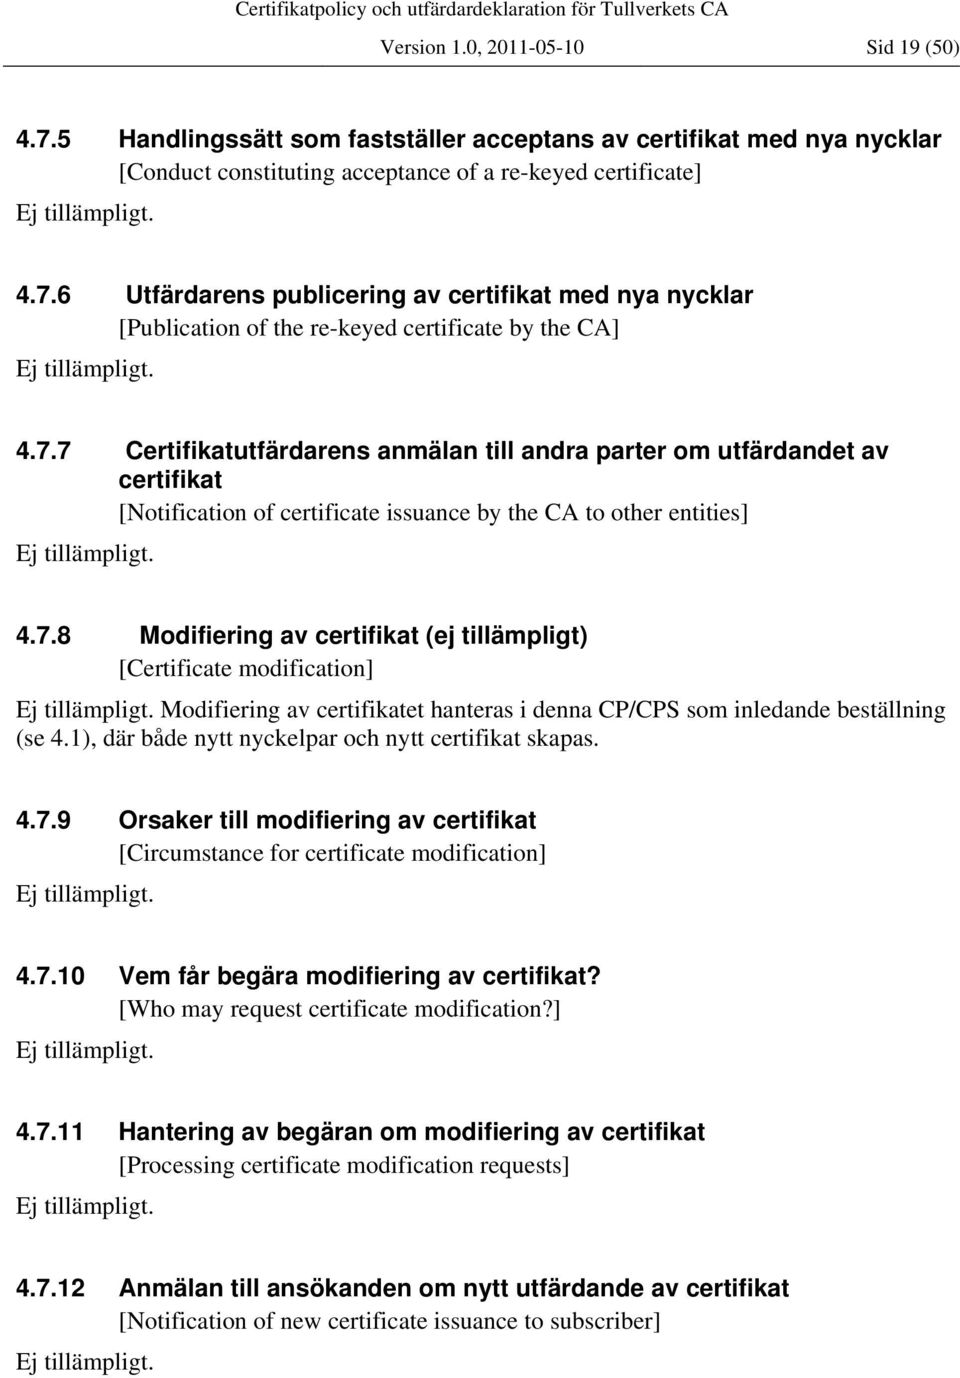 1), där både nytt nyckelpar och nytt certifikat skapas. 4.7.9 Orsaker till modifiering av certifikat [Circumstance for certificate modification] 4.7.10 Vem får begära modifiering av certifikat?